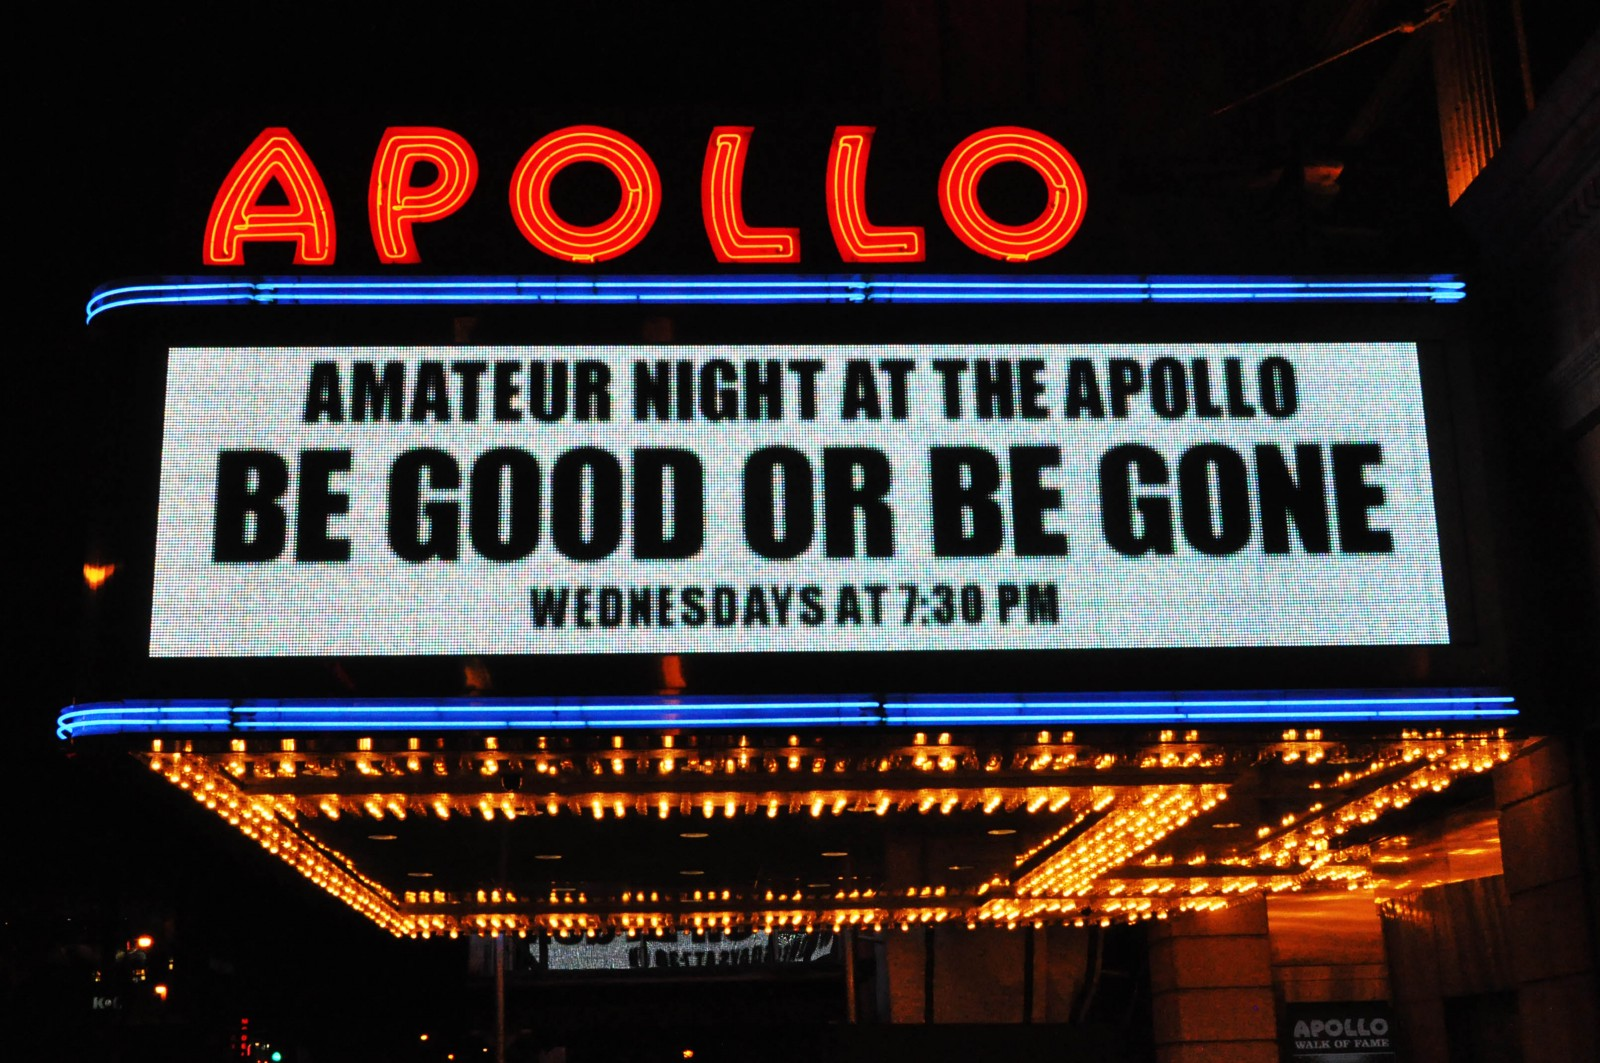 Amateur night at the appolo